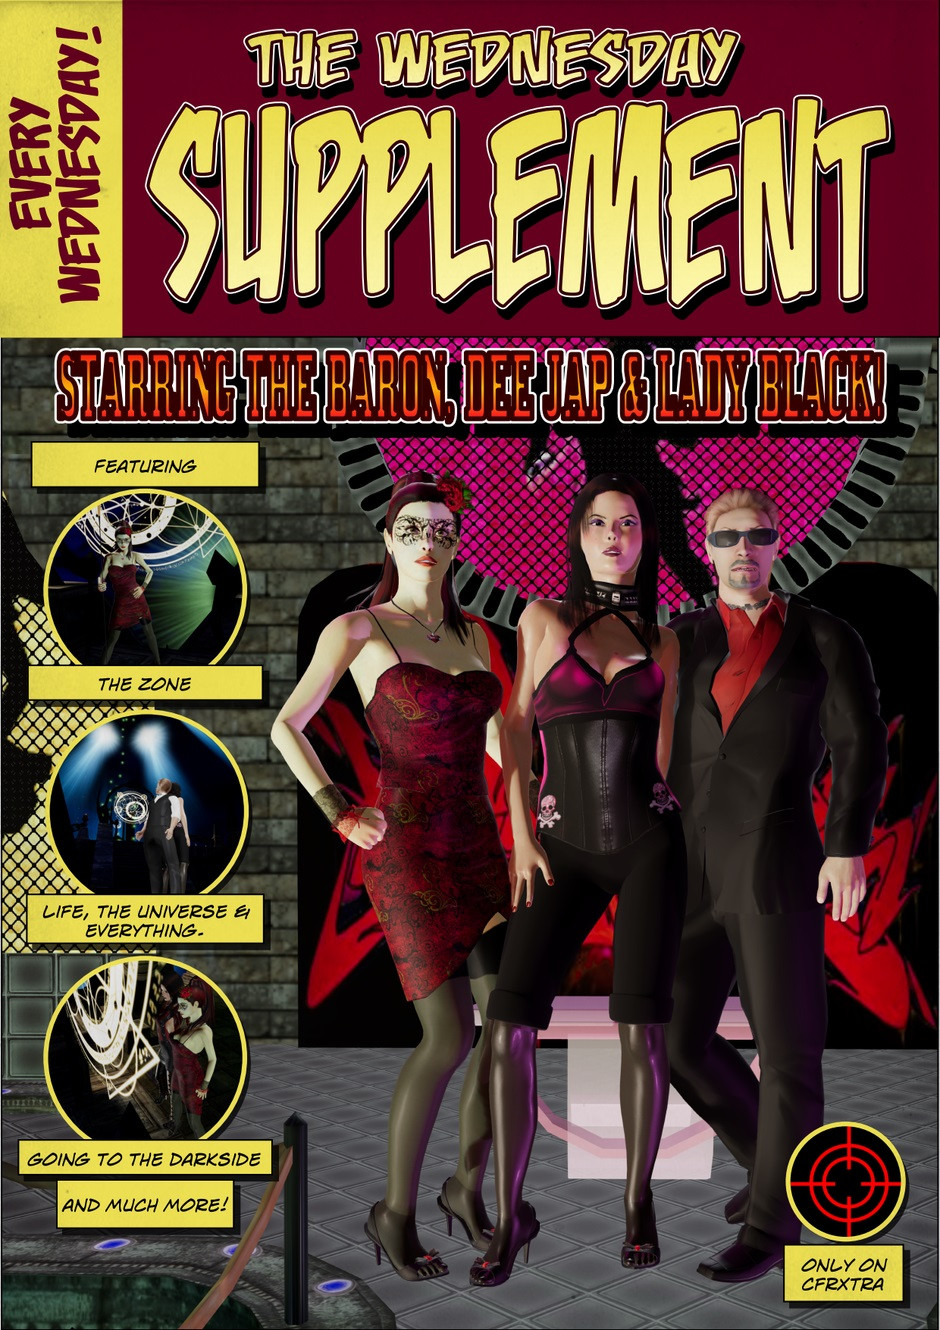 The Wednesday Supplement promo pic